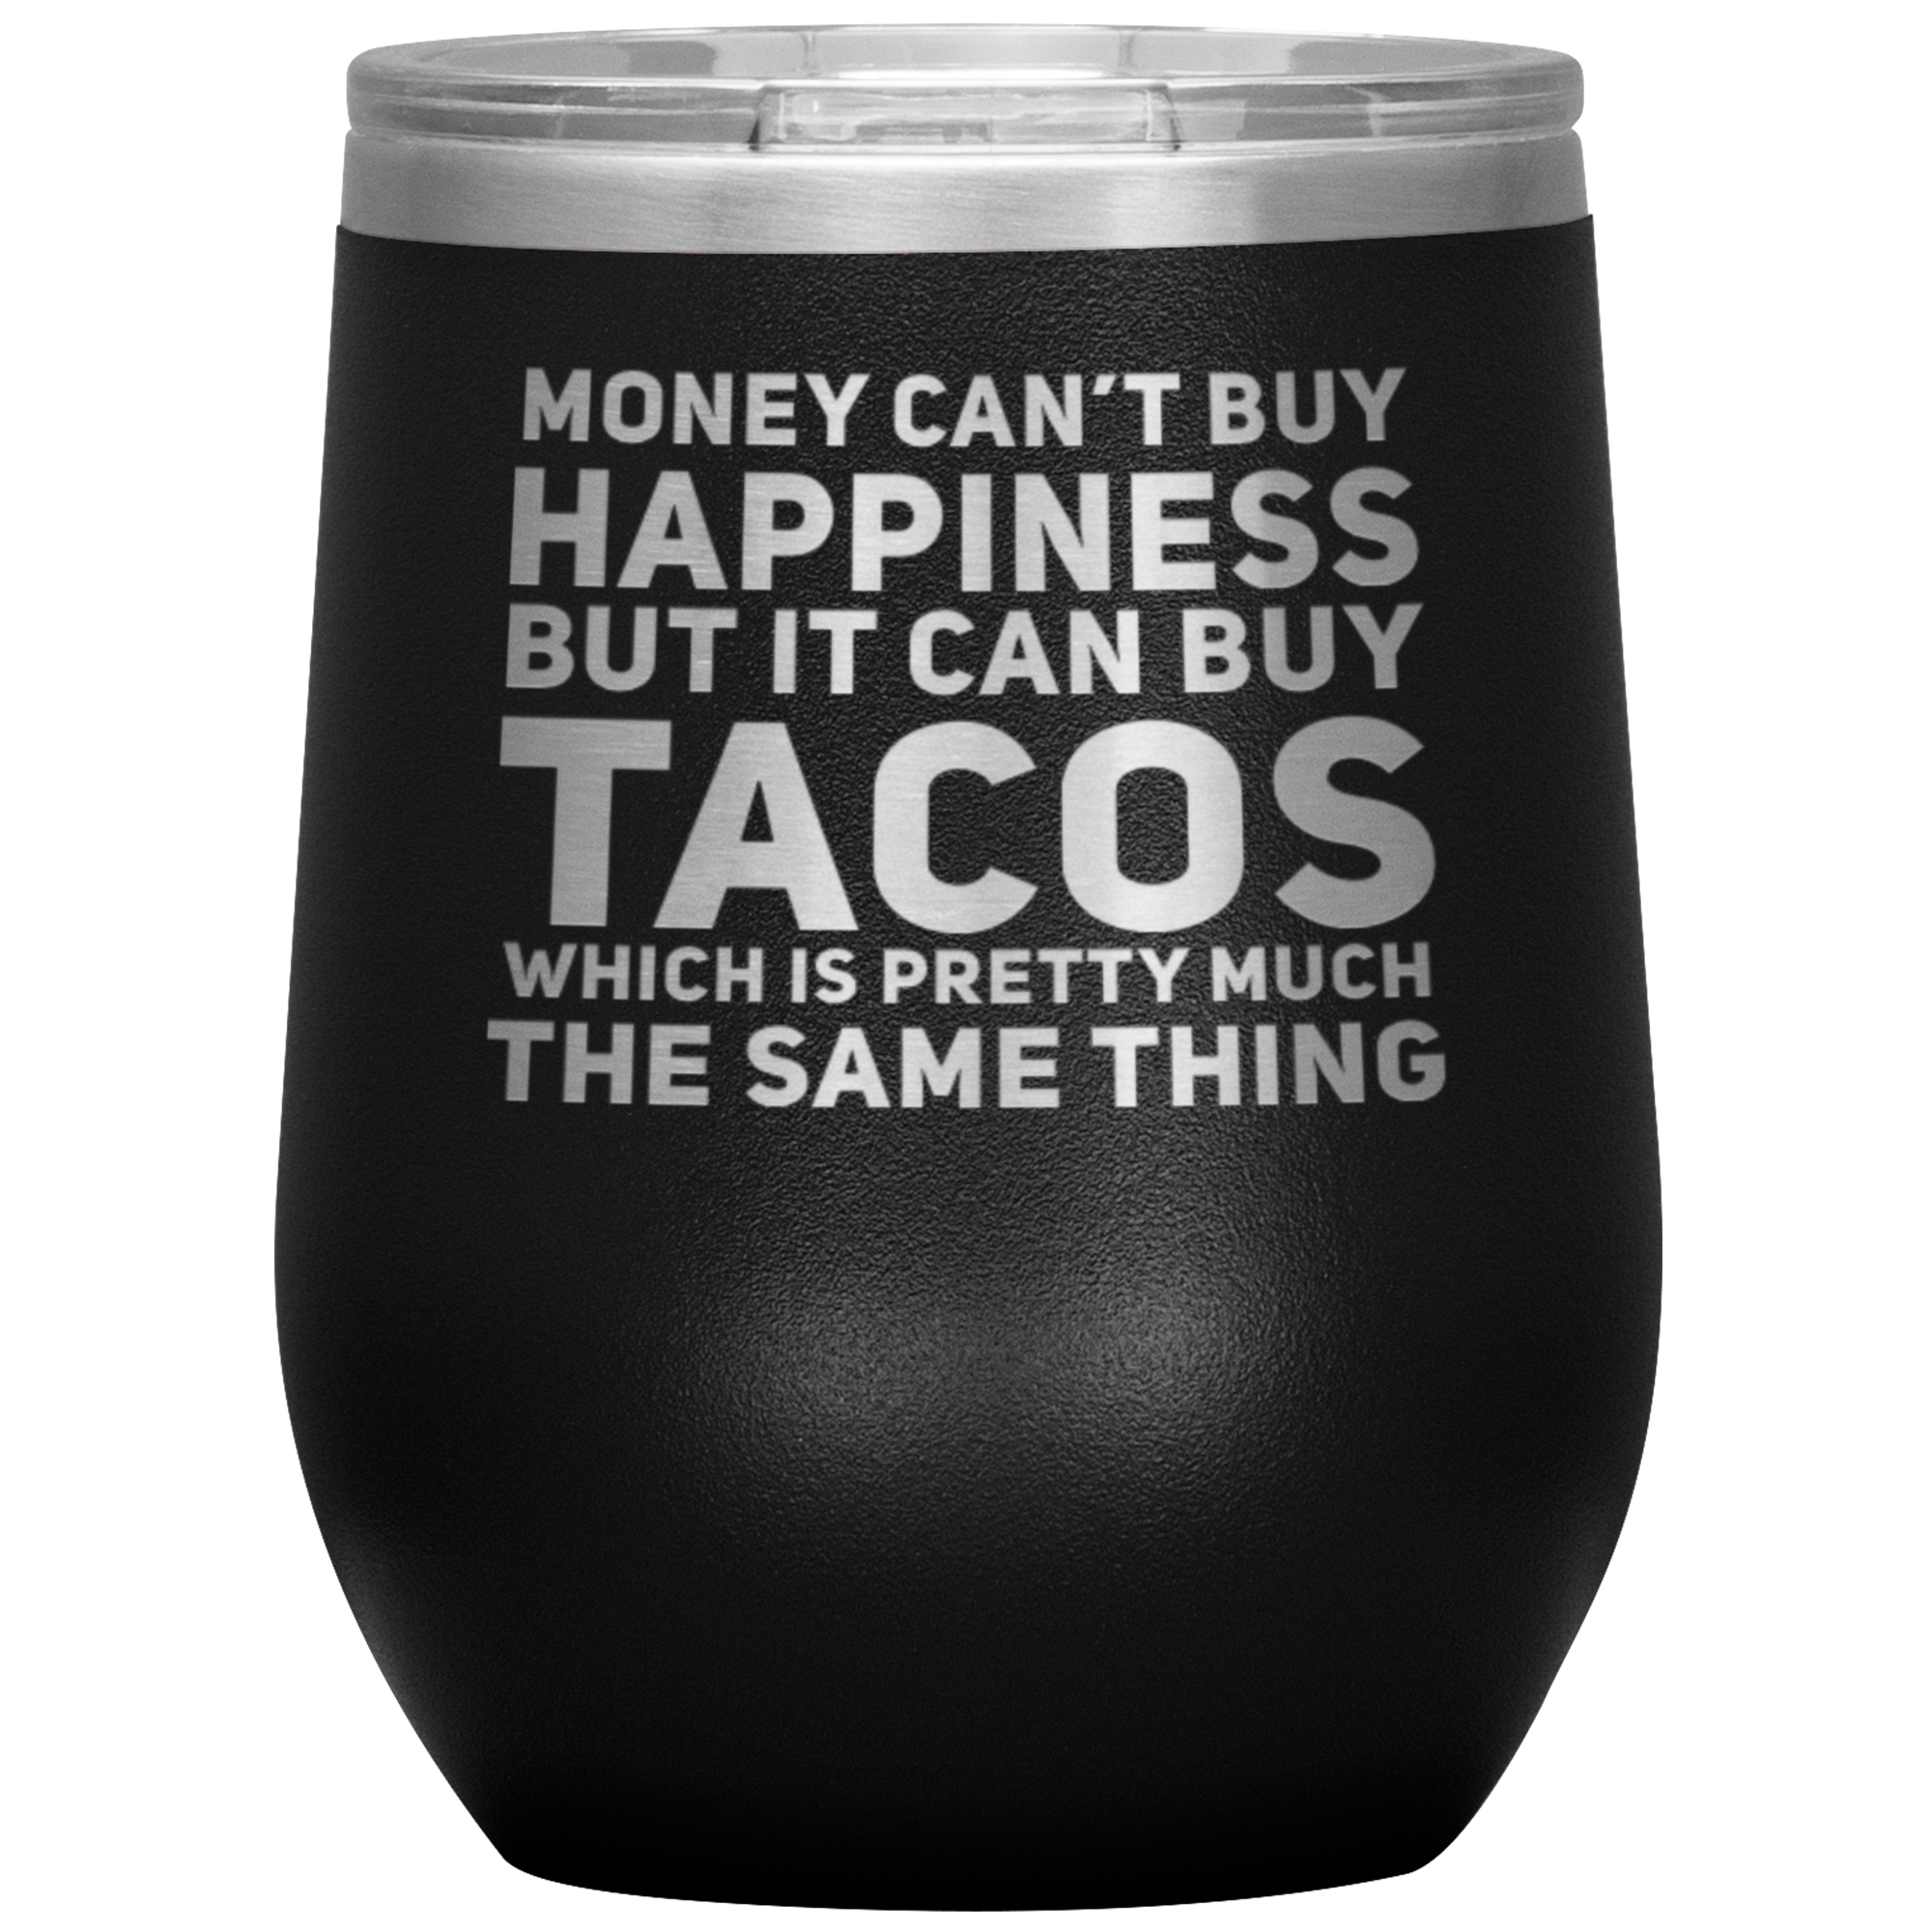 Taco Lover Gift Money Can't Buy Happiness But Can Buy Tacos Coffee Tumbler 12 oz